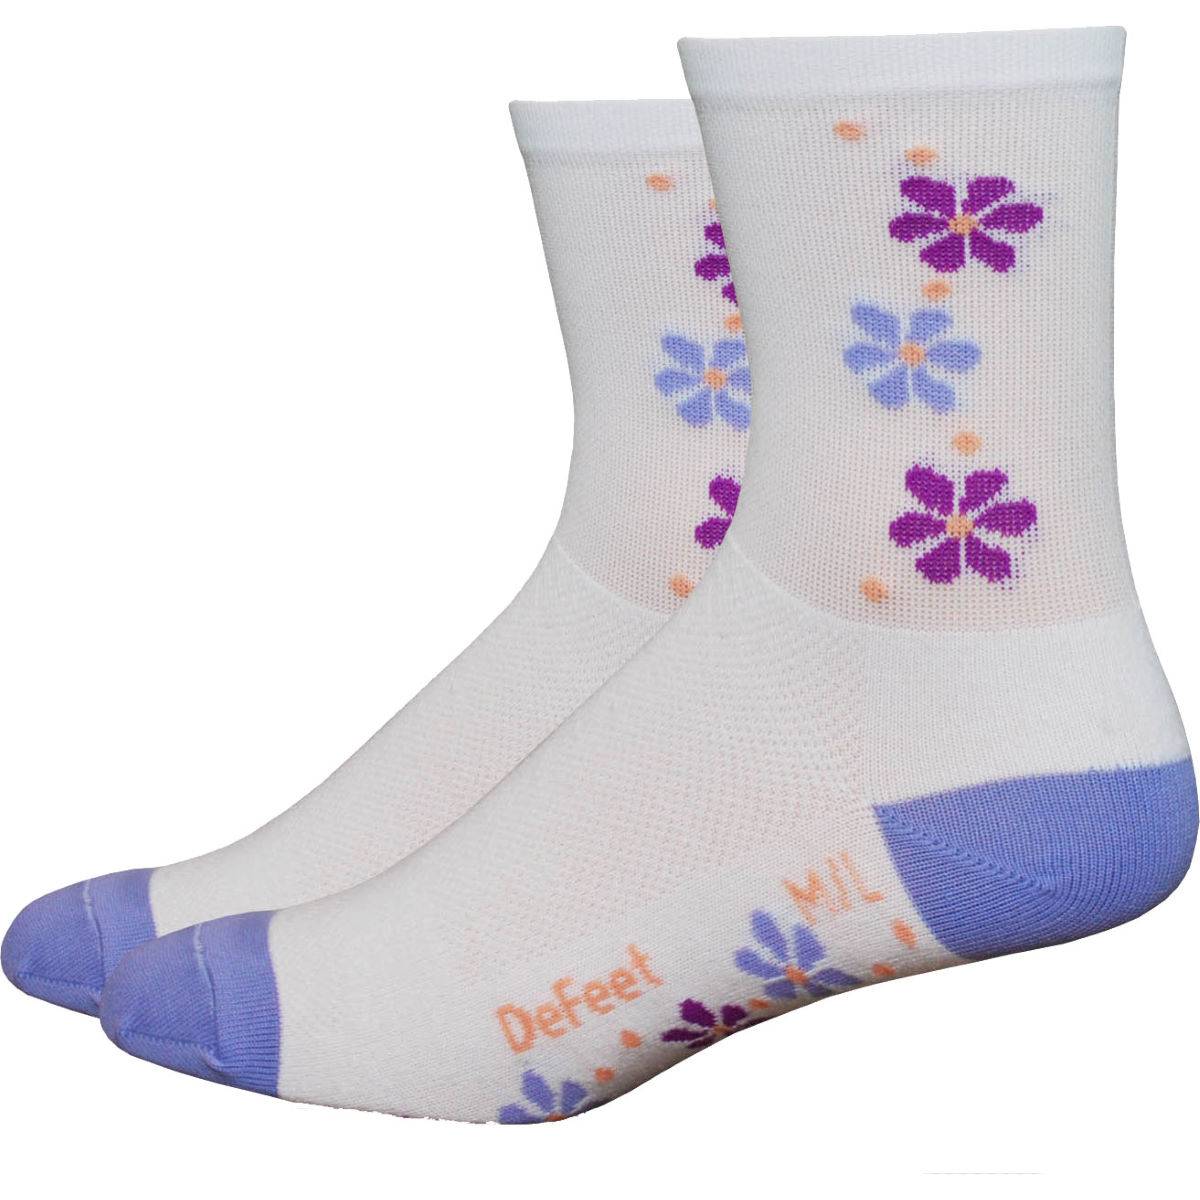 DeFeet Women's Aireator Pansy Cycling Socks